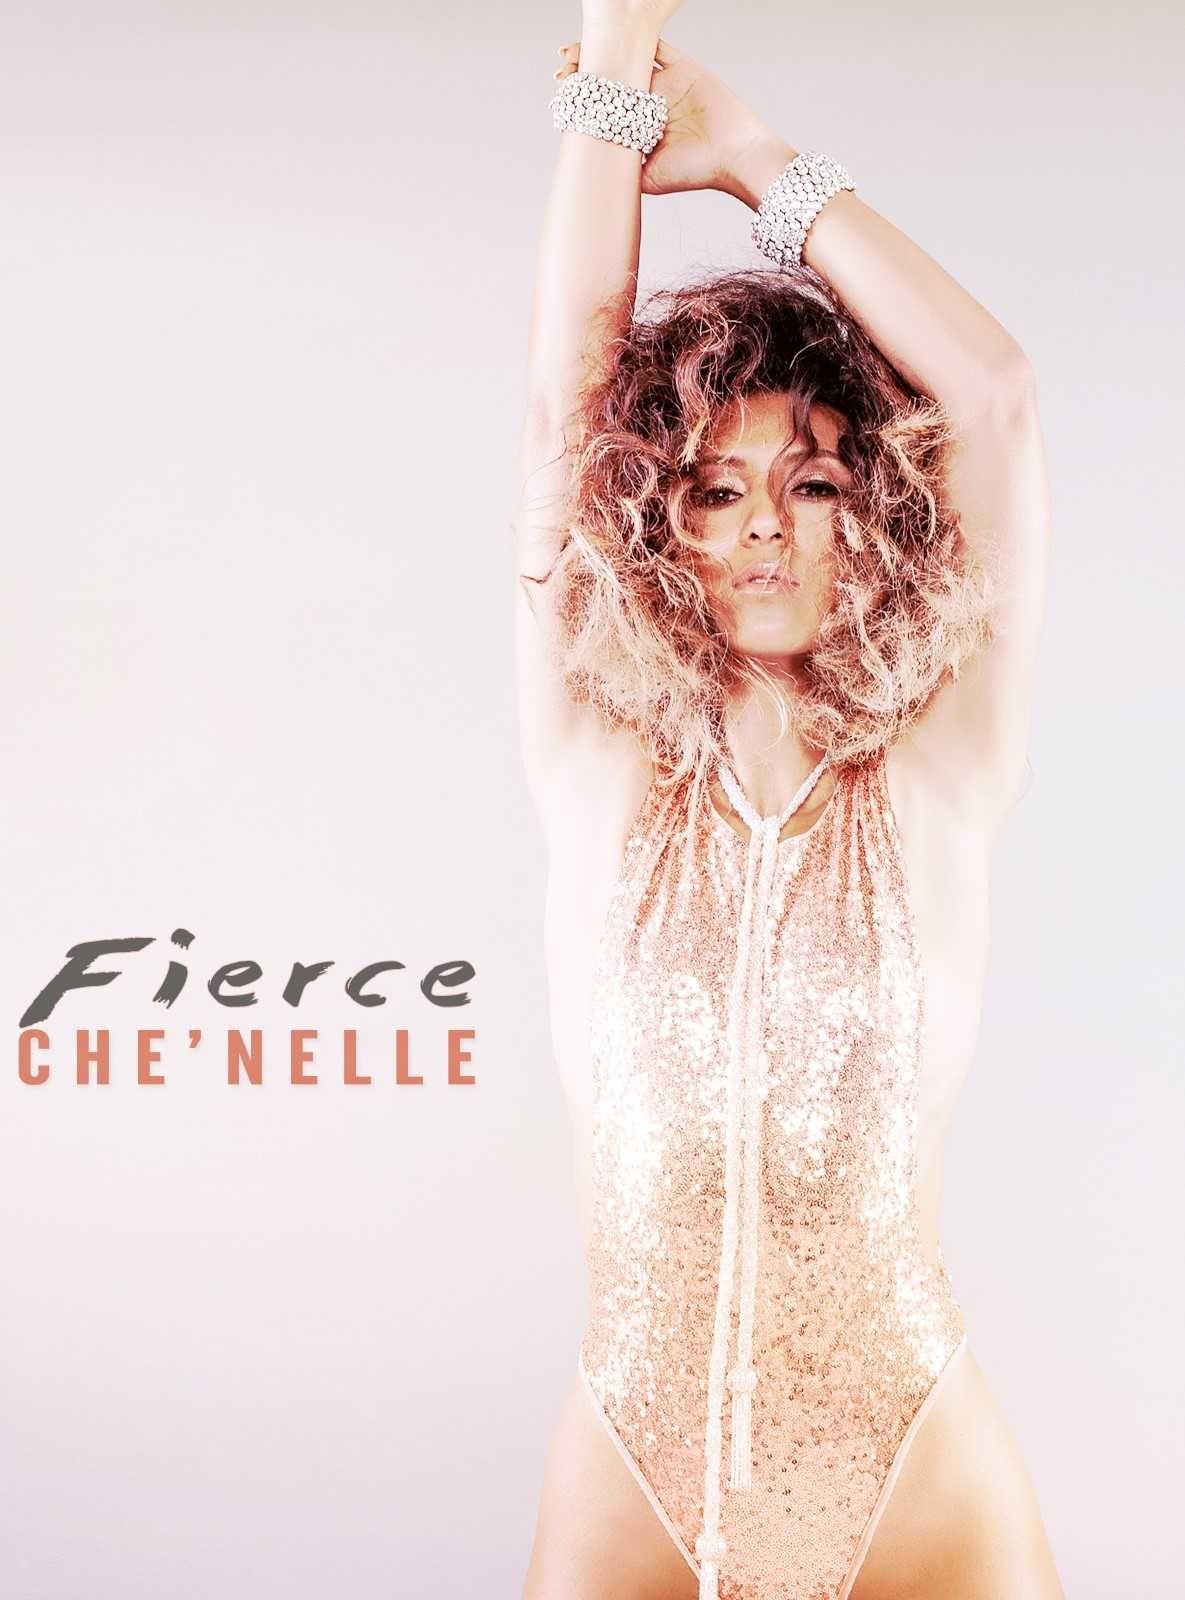 Che'Nelle Releases 'Fierce' Music Video With A Positive Message | Che'Nelle